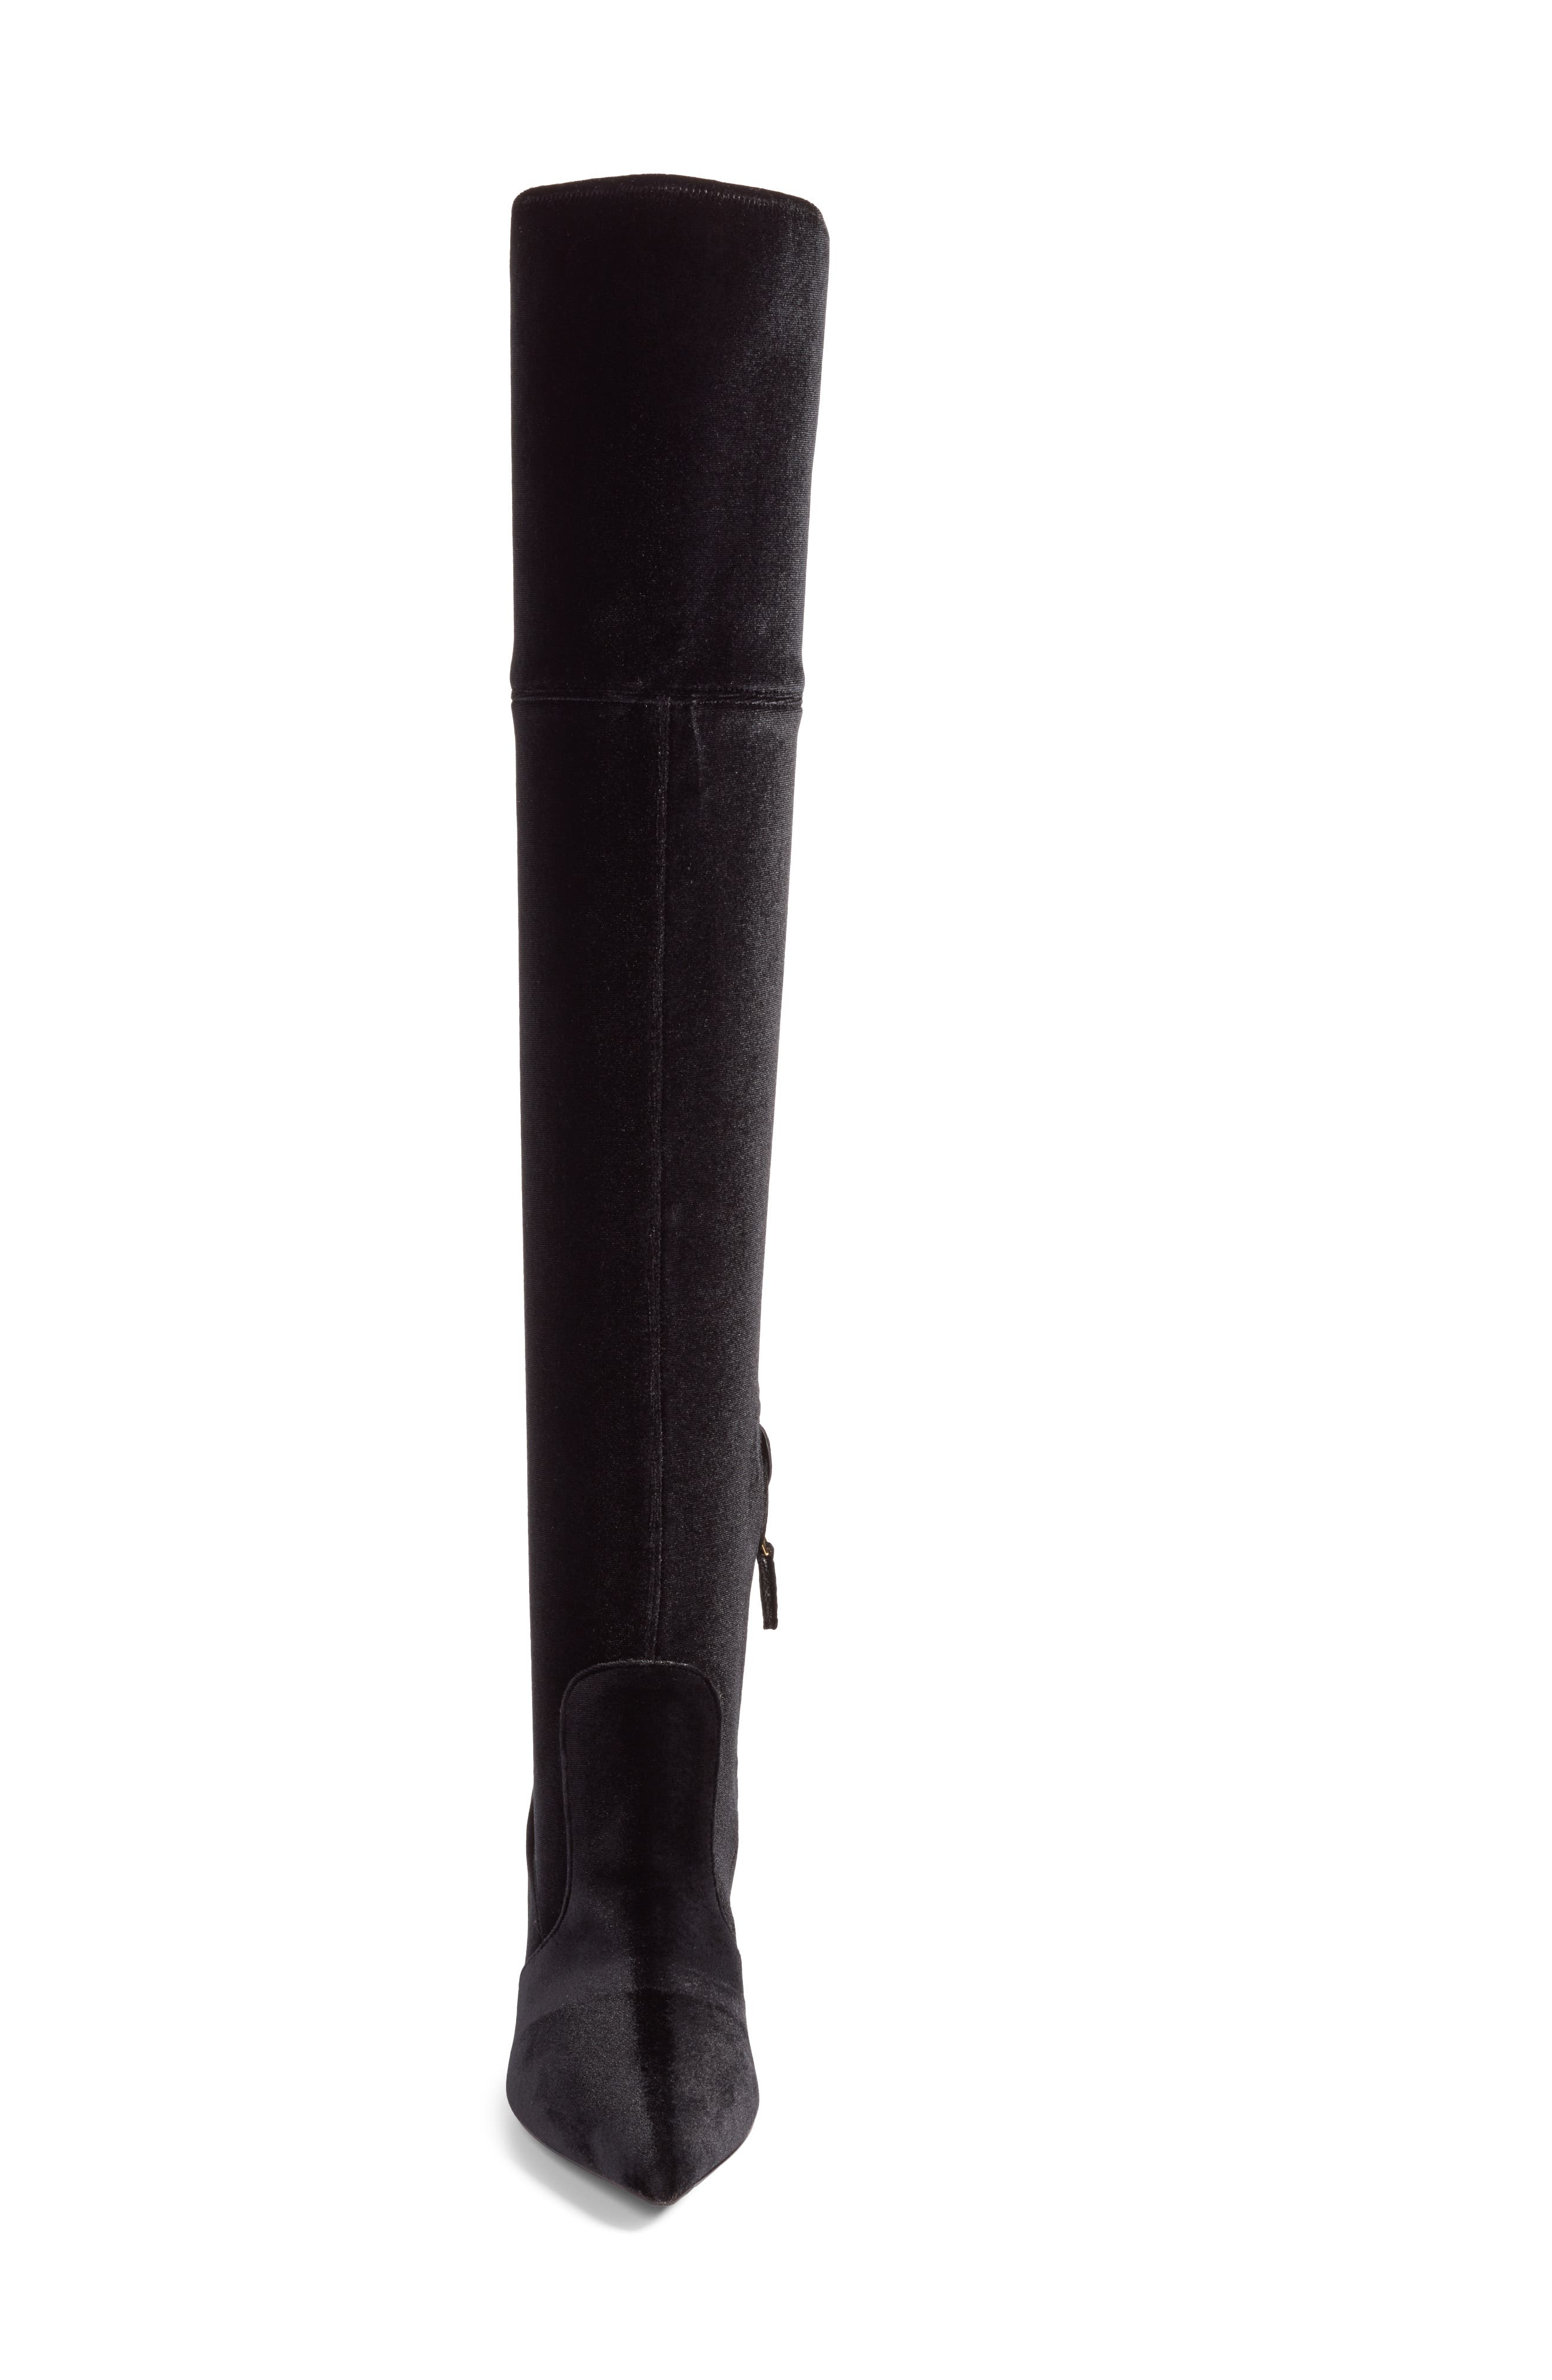 Over the Knee Boot,                             Alternate thumbnail 4, color,                             Black